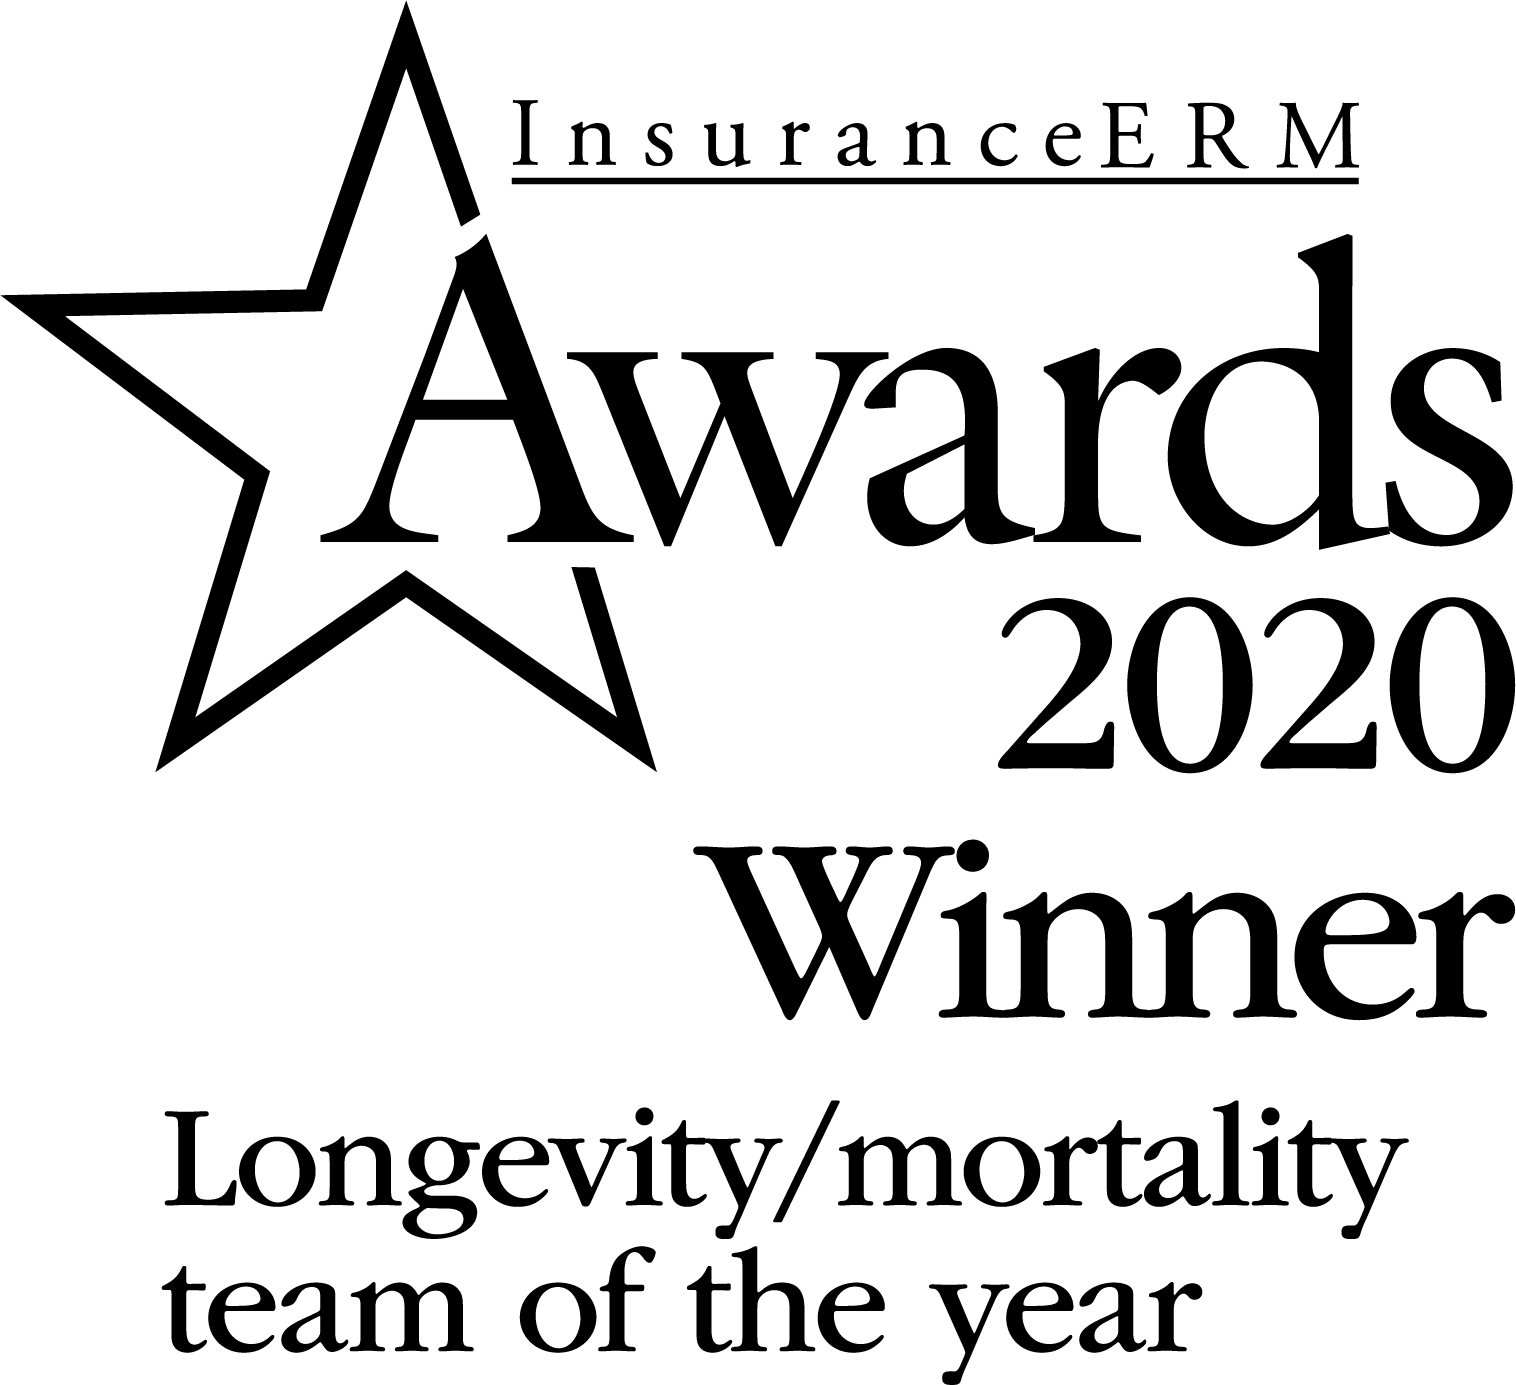 Longevity / mortality consultant of the year 2020